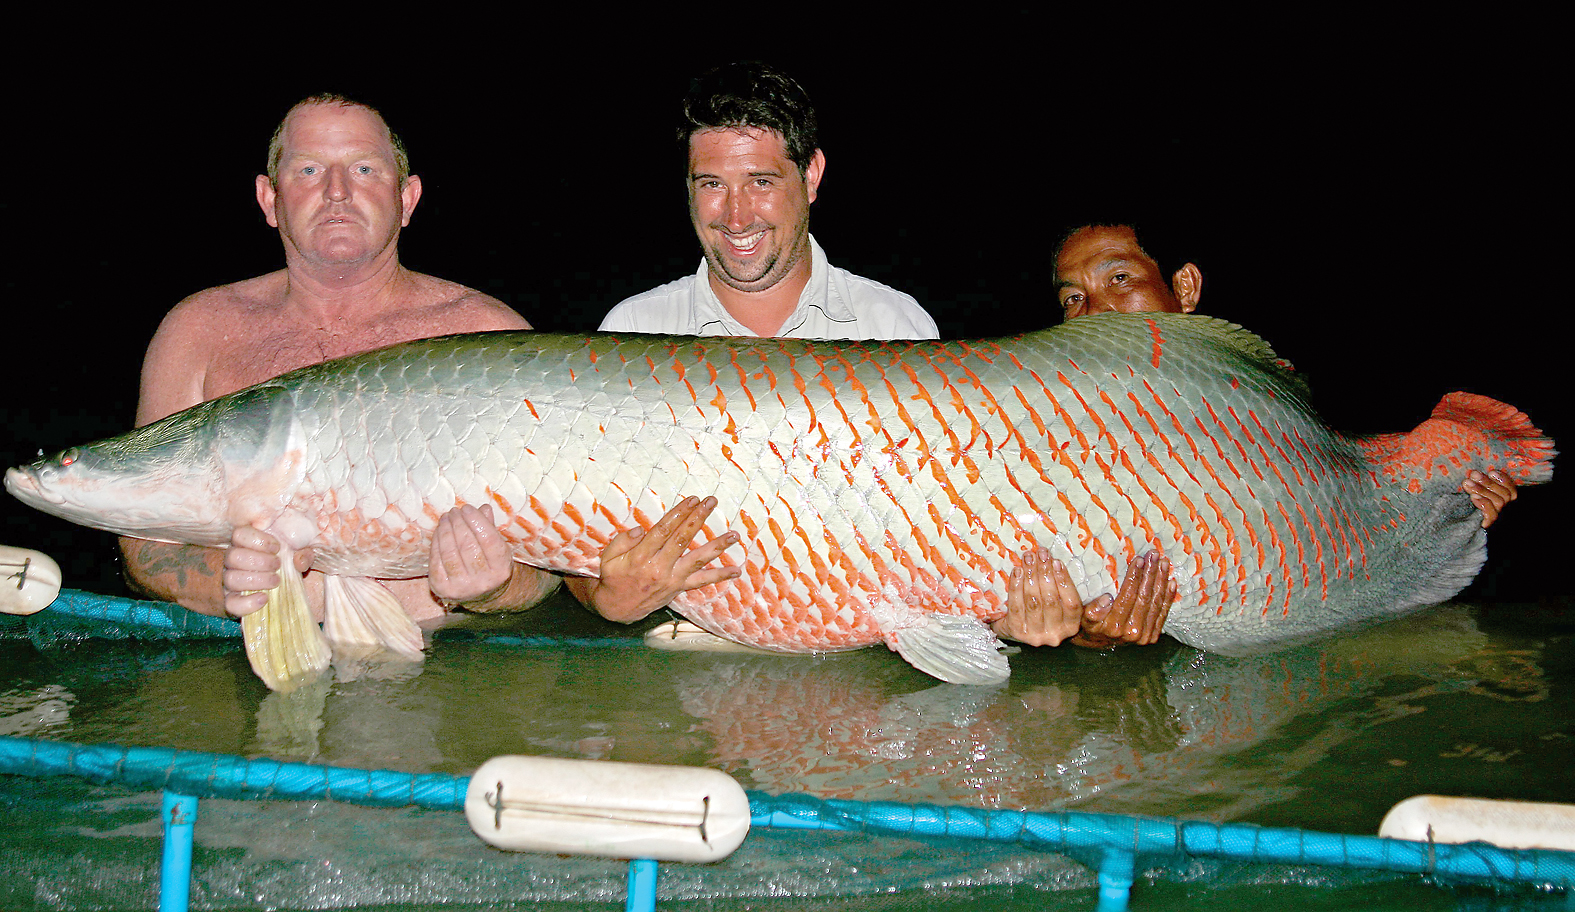 Angling Times columnist Gary Newman tells of his quest for an arapaima